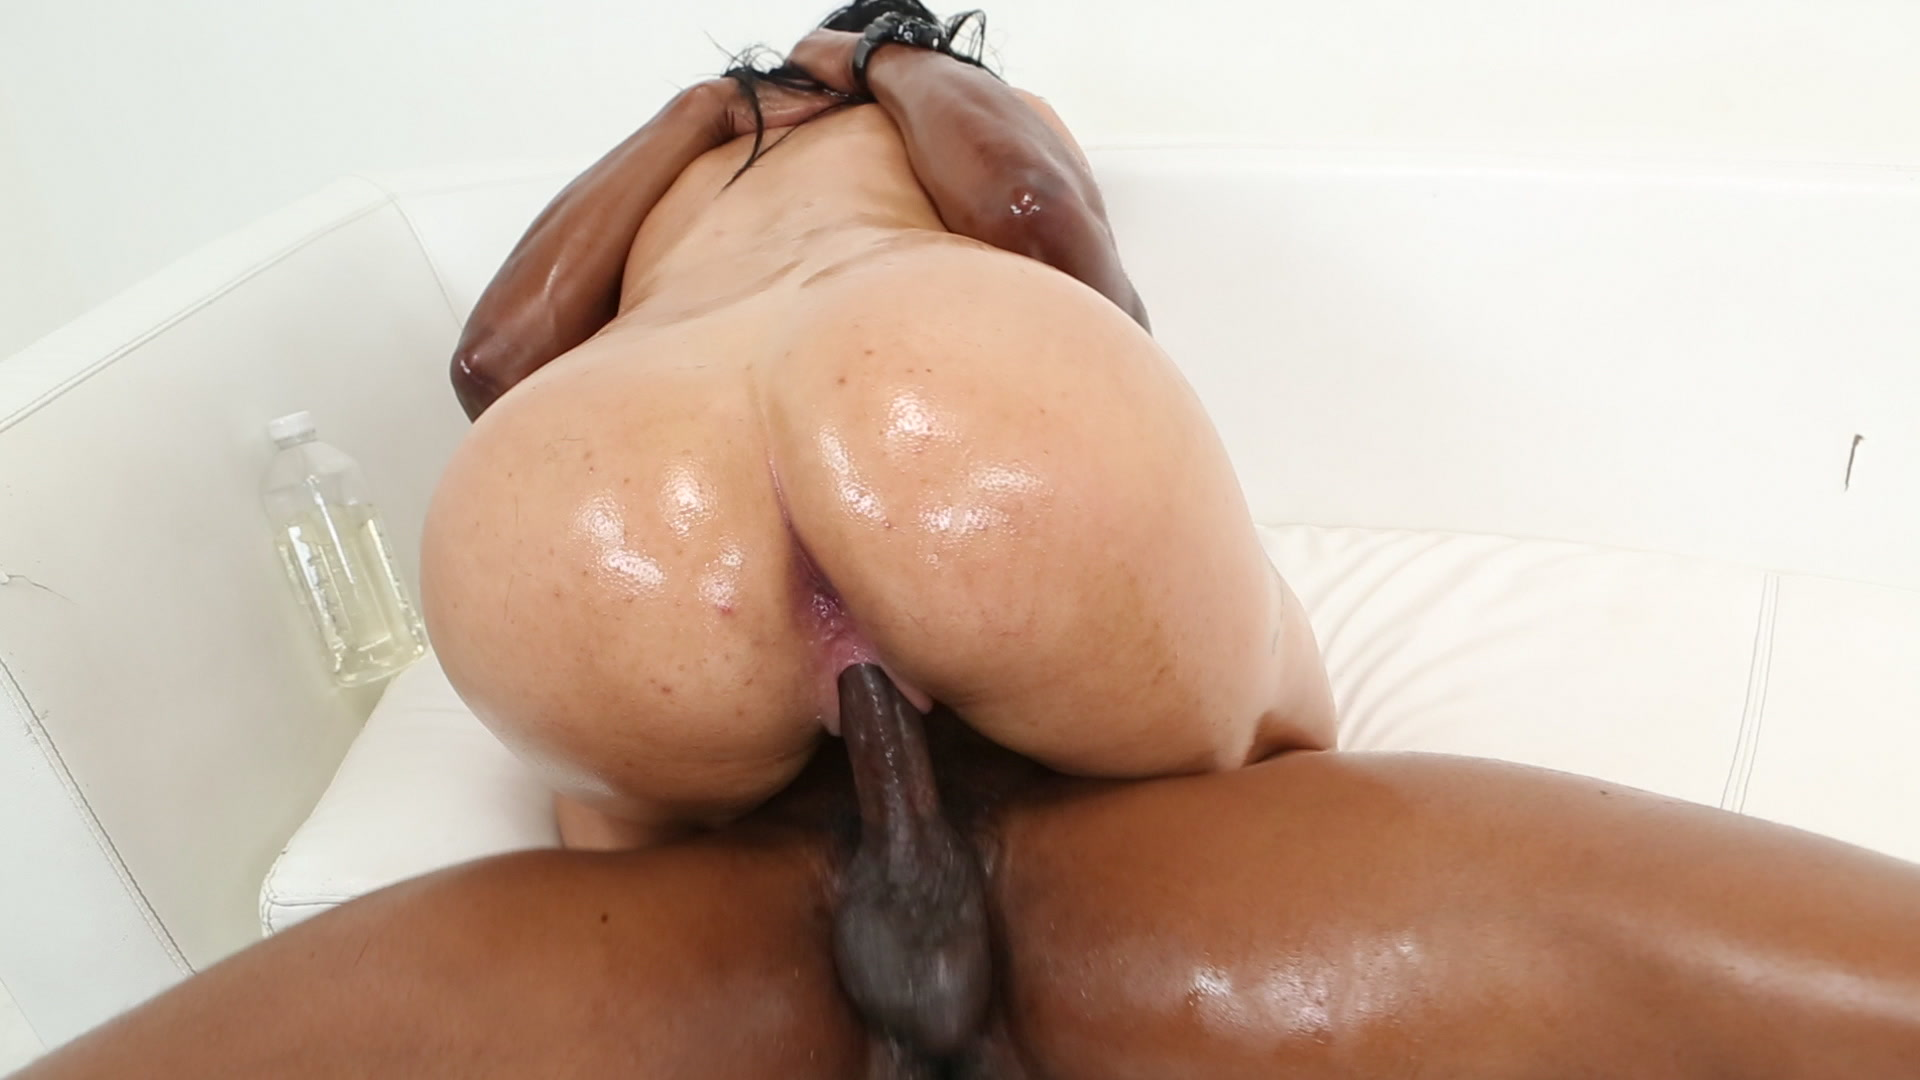 fucking-interracial-wet-asses-girlies-gallery-free